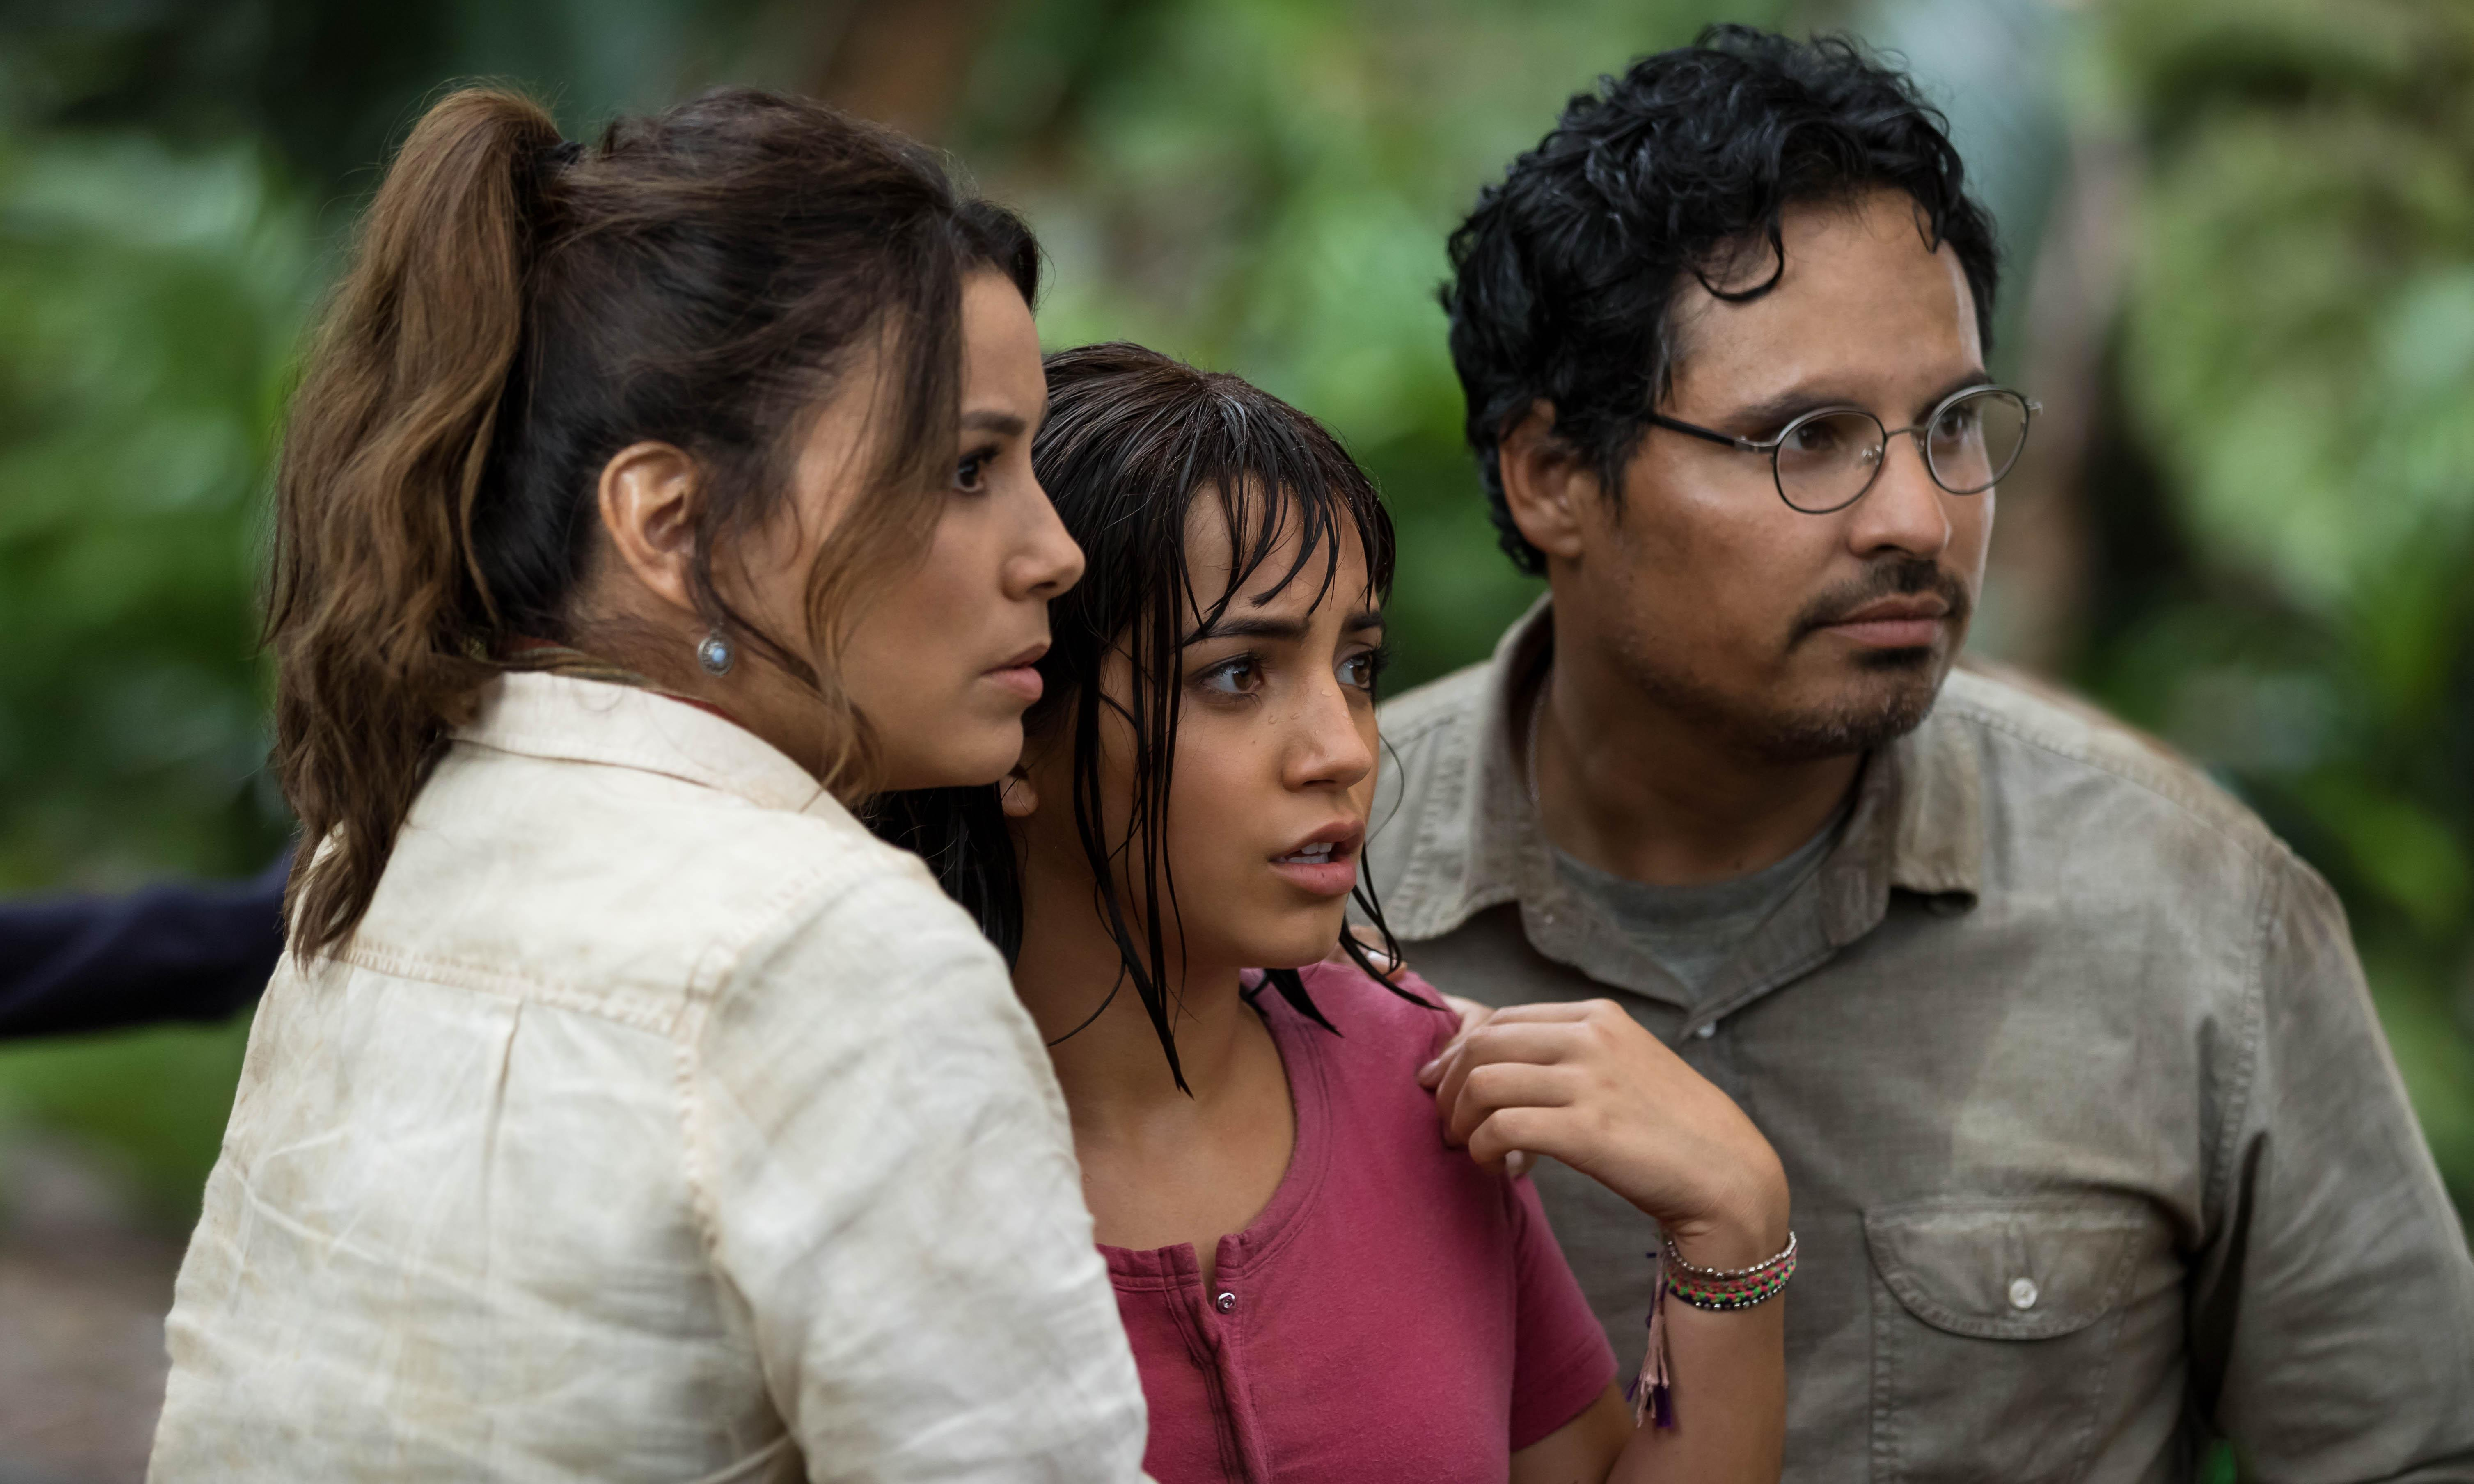 Dora and the Lost City of Gold review – live-action romp for the teen explorer